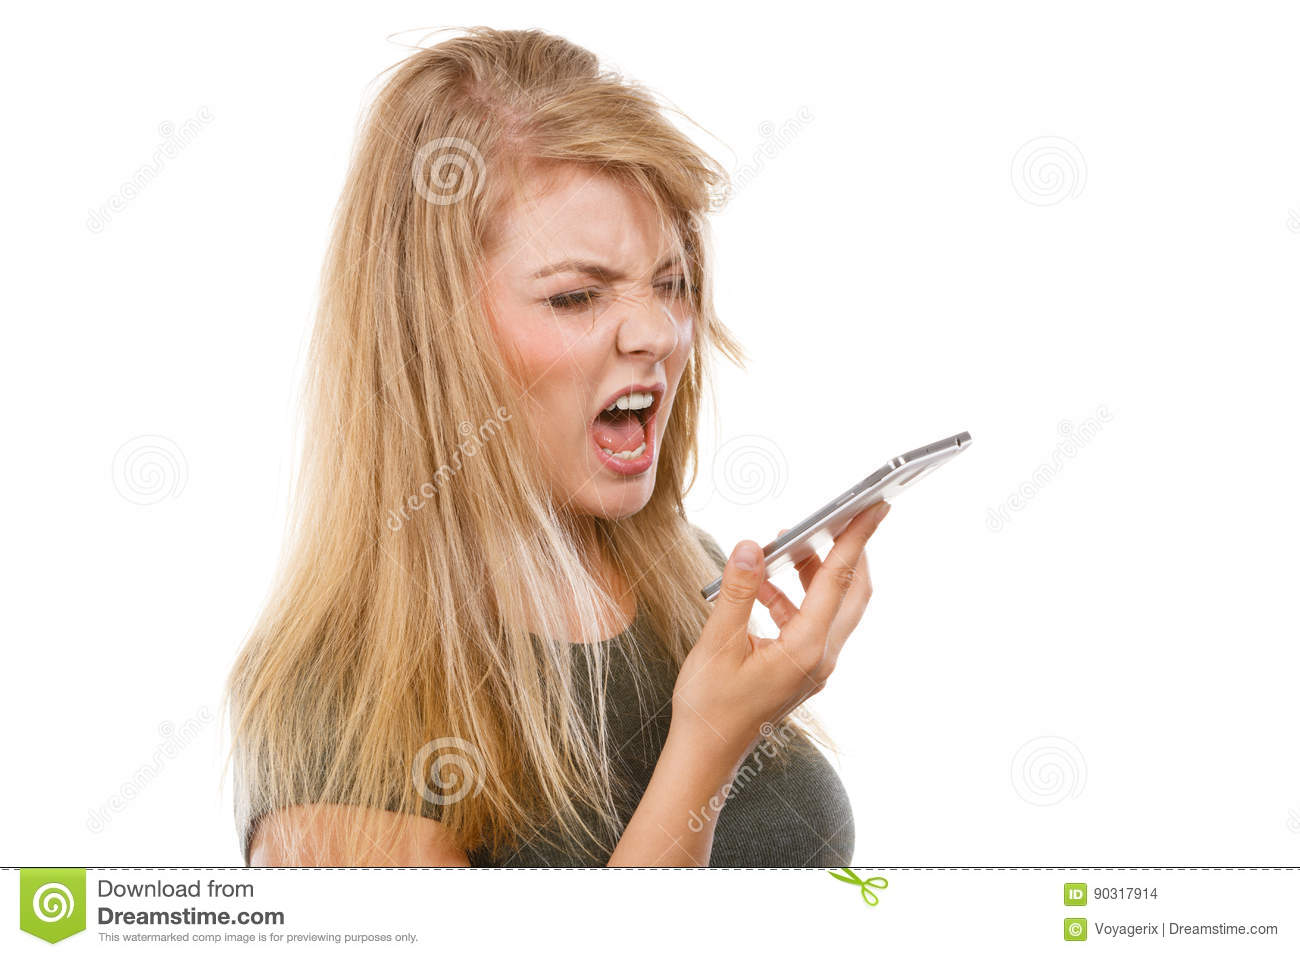 Download Angry Young Woman Talking On Phone Stock Photo - Image of suspicious, woman: 90317914